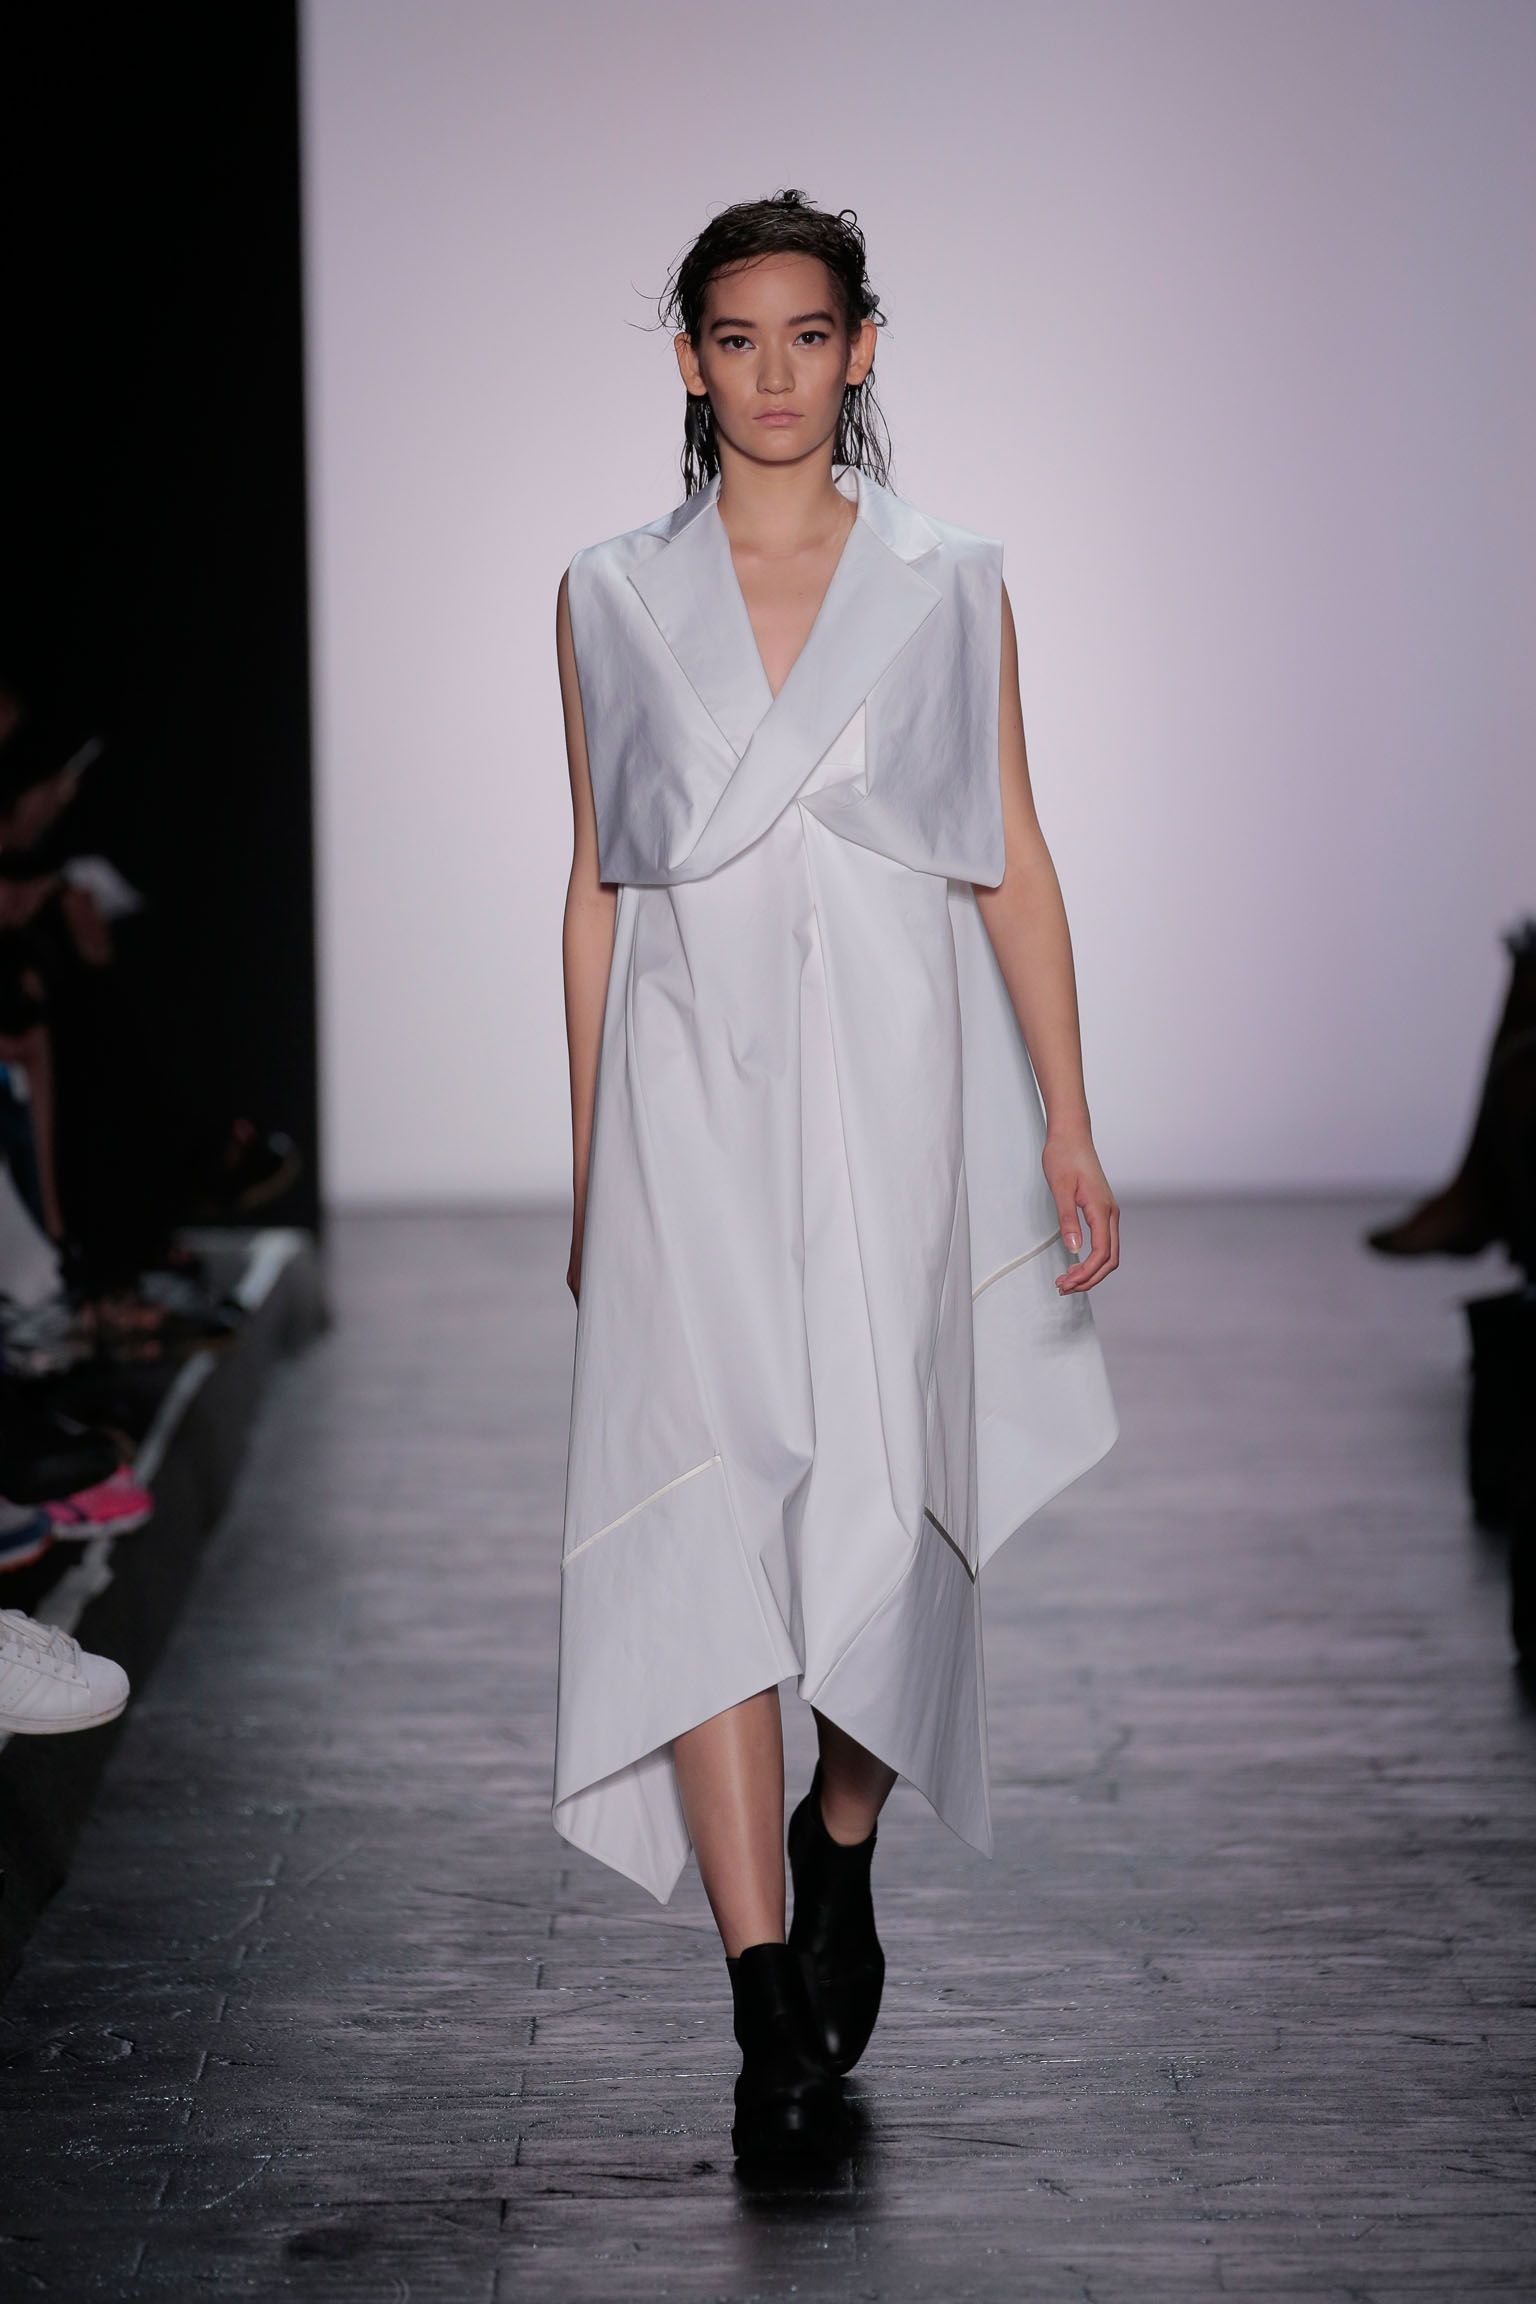 New York Fashion Week S/S 16 - Mehrzad Hemati - Look 2 - Image by Getty Images